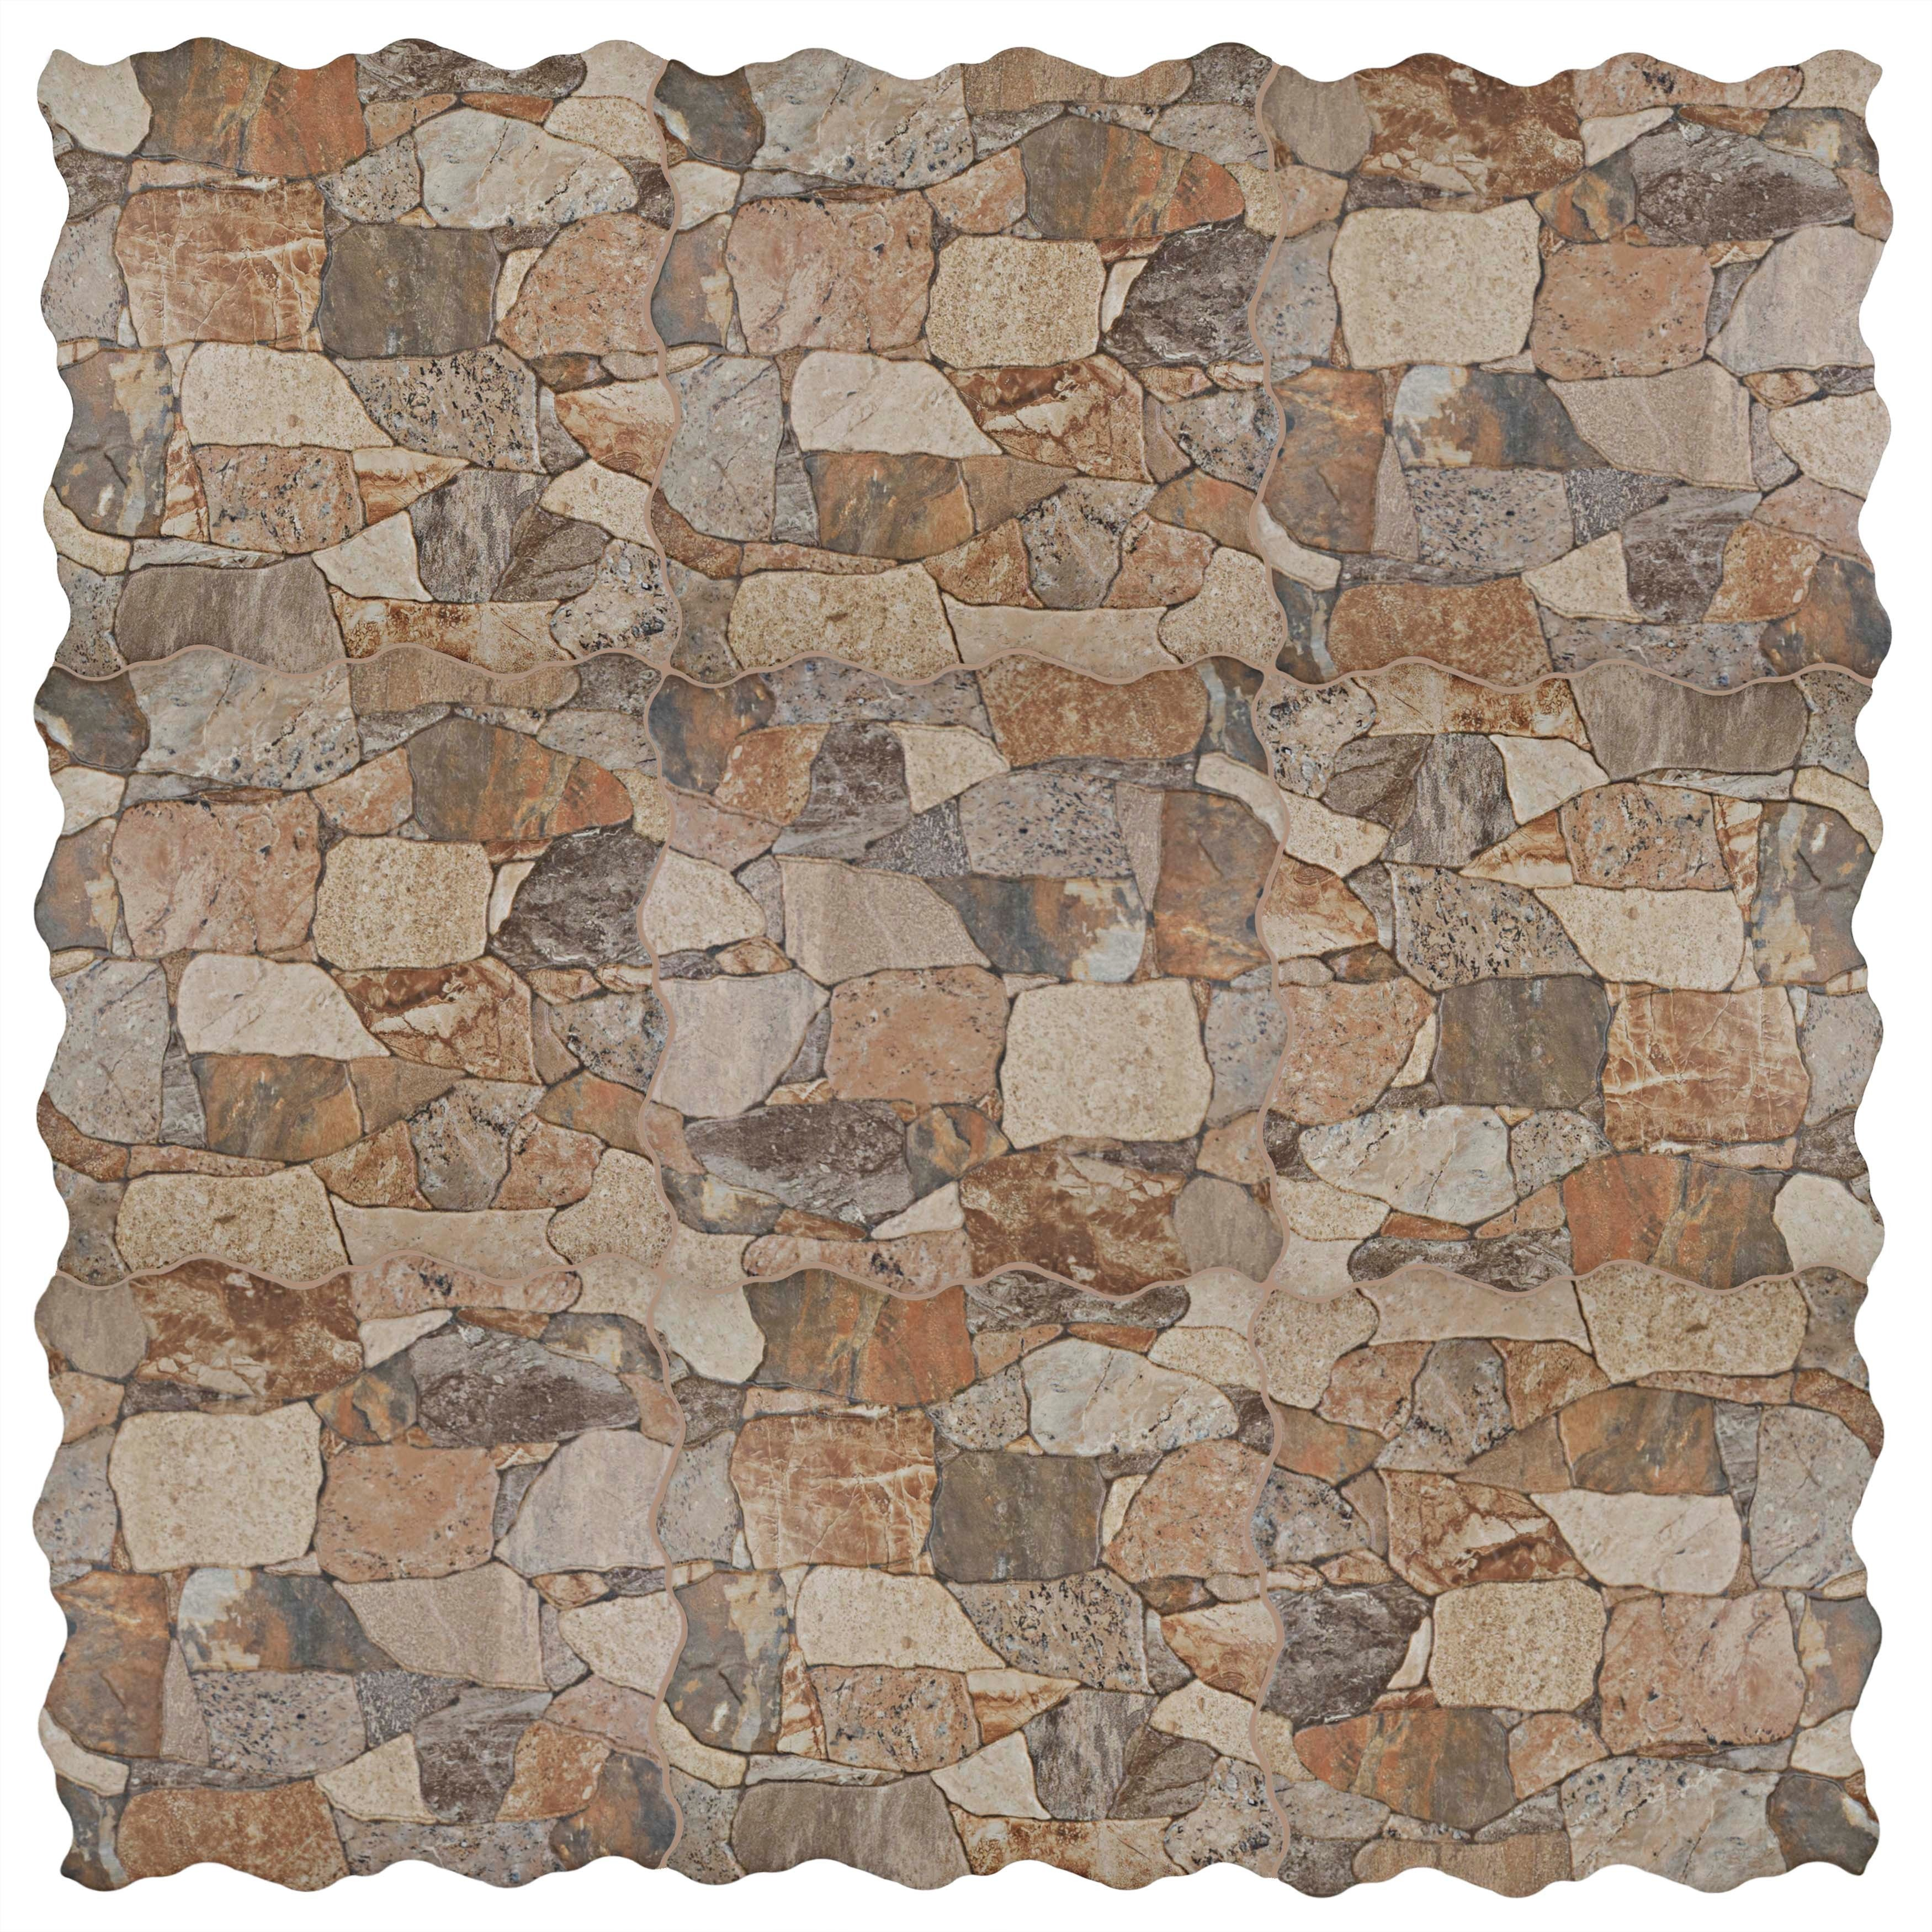 Somertile 1775 x 1775 inch atticus gris stone look ceramic floor somertile 1775 x 1775 inch atticus gris stone look ceramic floor and wall tile case of 7 free shipping today overstock 15438740 dailygadgetfo Image collections